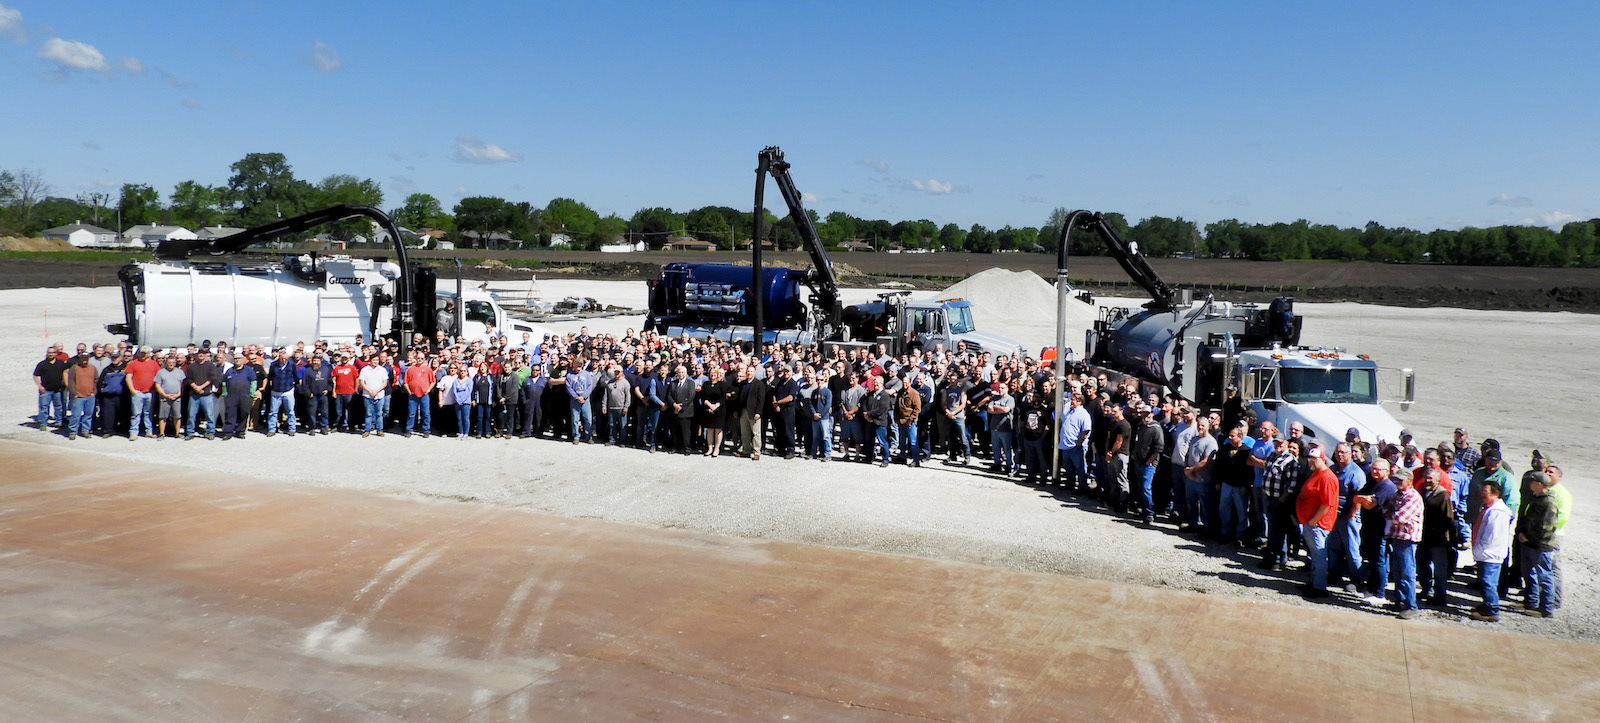 Vactor executives, employees and special guests gather to celebrate the expansion of the Streator facility, which will include expanding existing fabrication, welding, paint and assembly areas and test bays, as well as updates to the current training center and customer inspection facility.